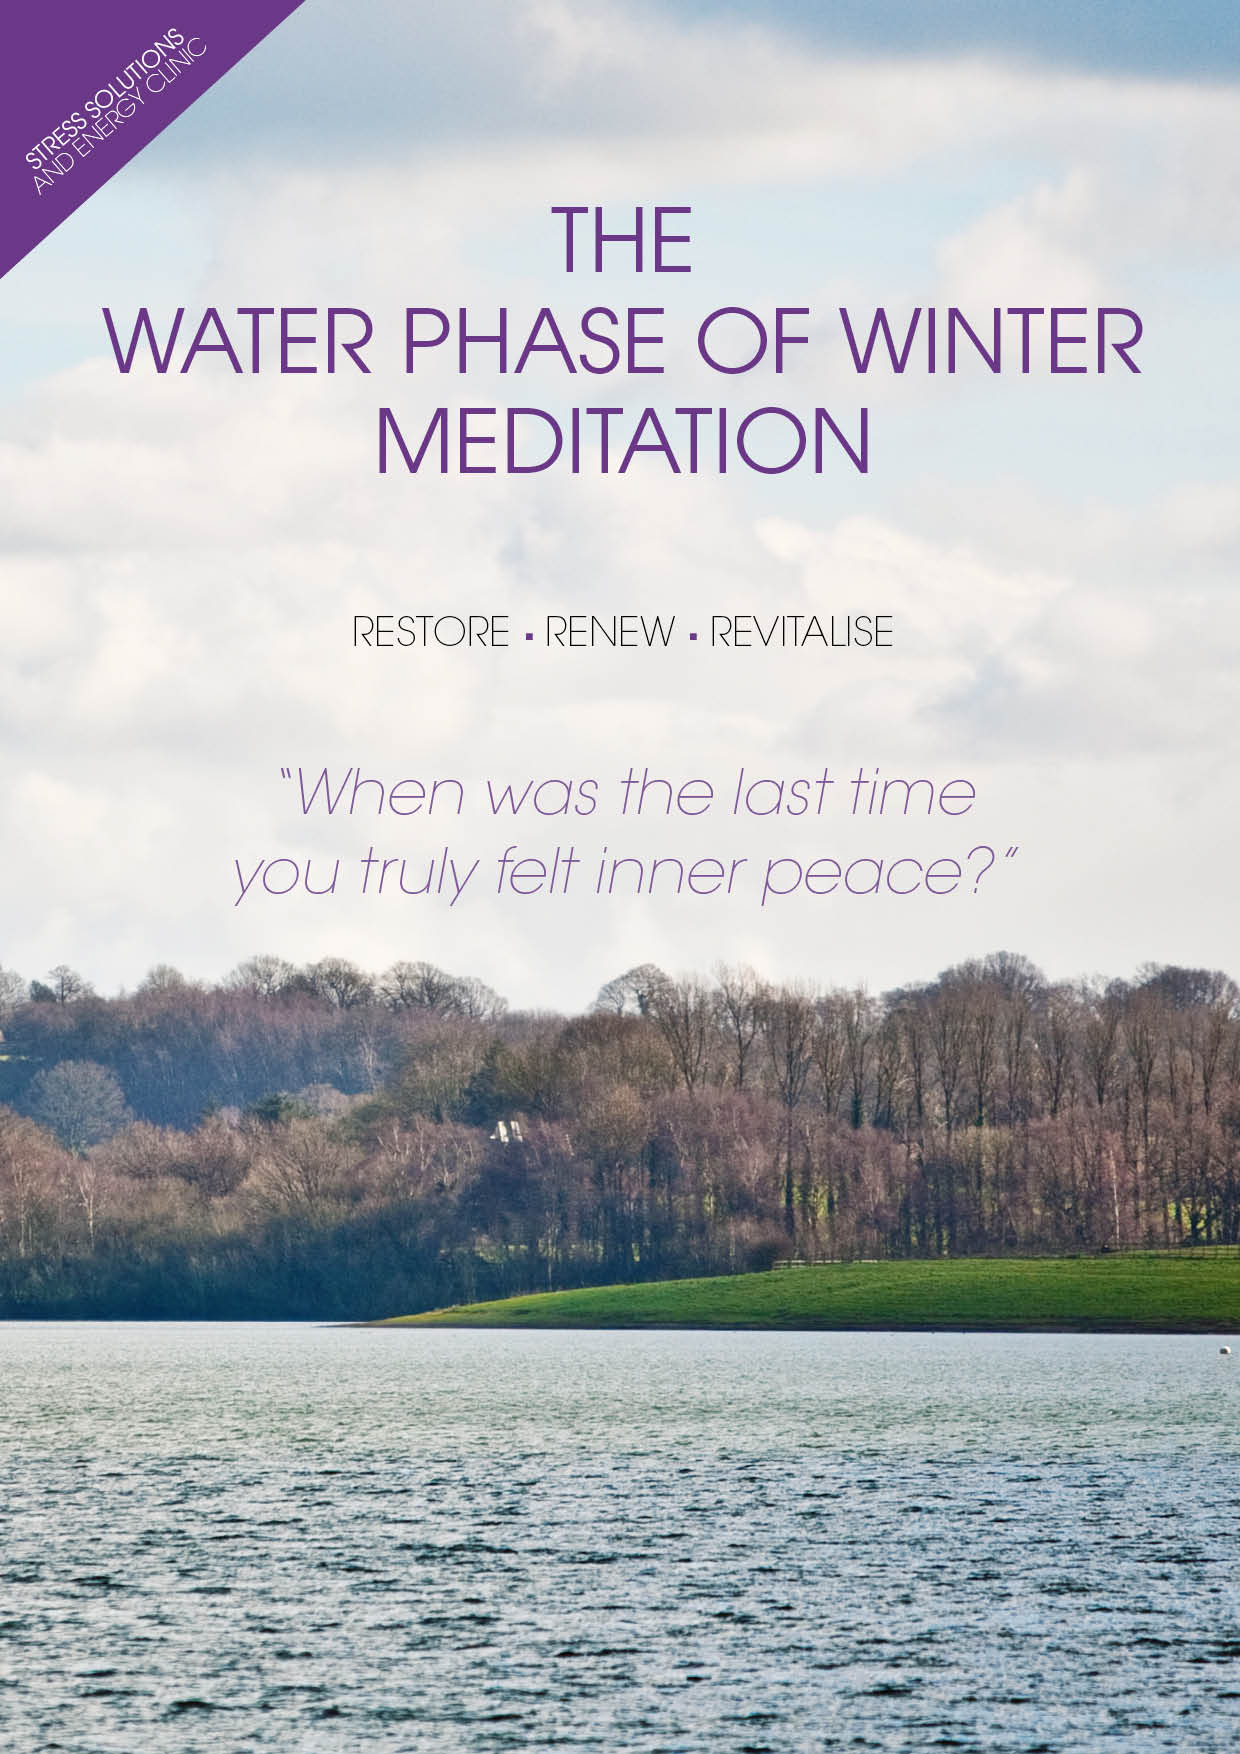 IMAGE The Water Phase of Winter Meditation, techniques and exercises for health, wellbeing and spiritual development - mindfulness in movement.jpg